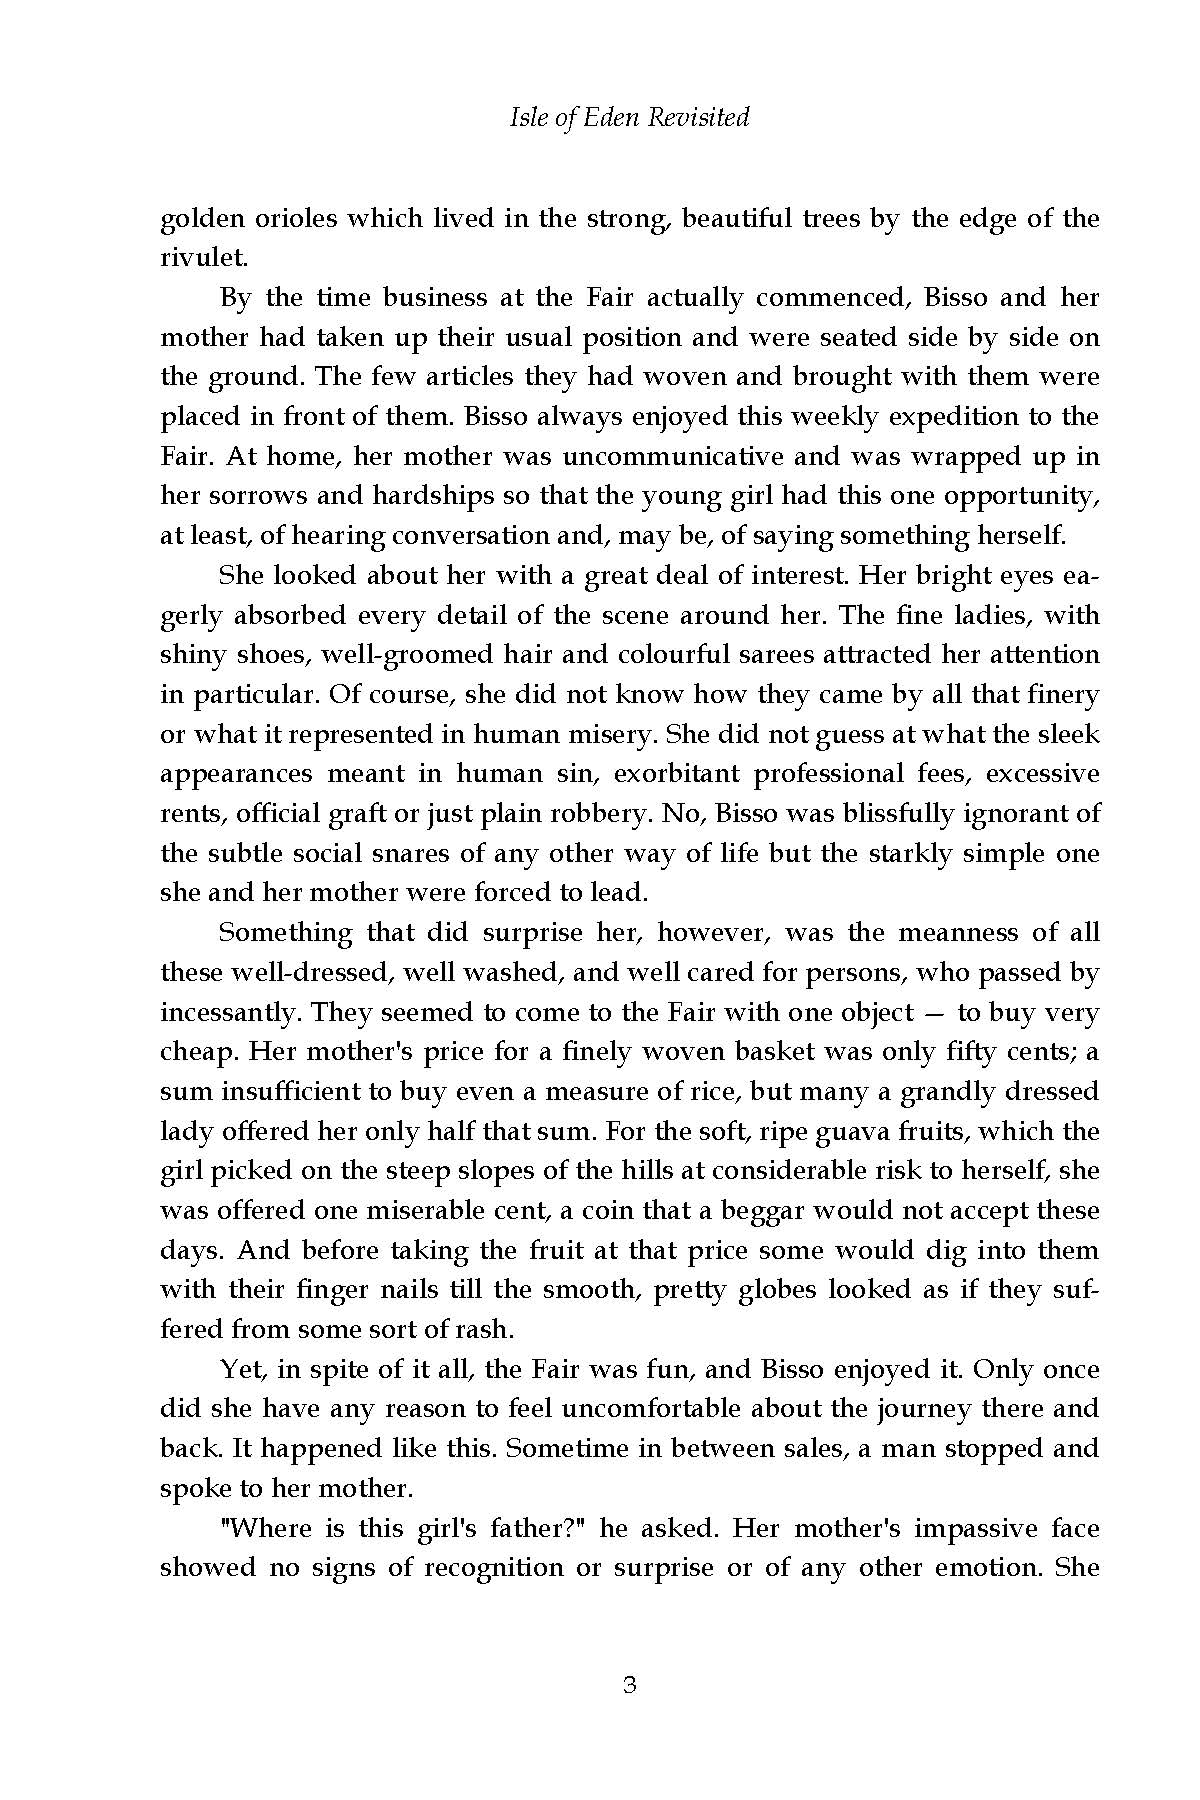 jgre050217 (final text)_Page_05.jpg